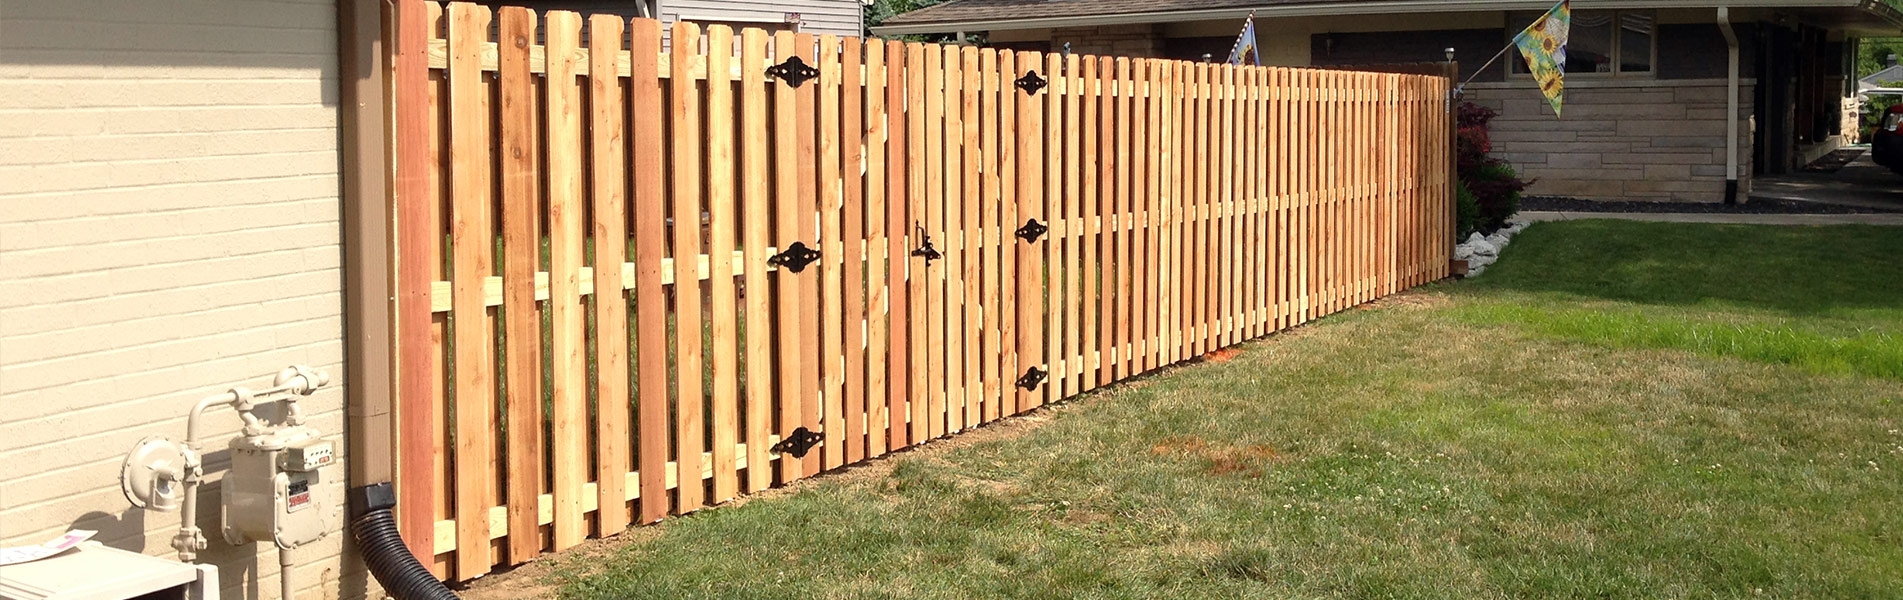 Fencing Contractor In Indianapolis In Fence Installation